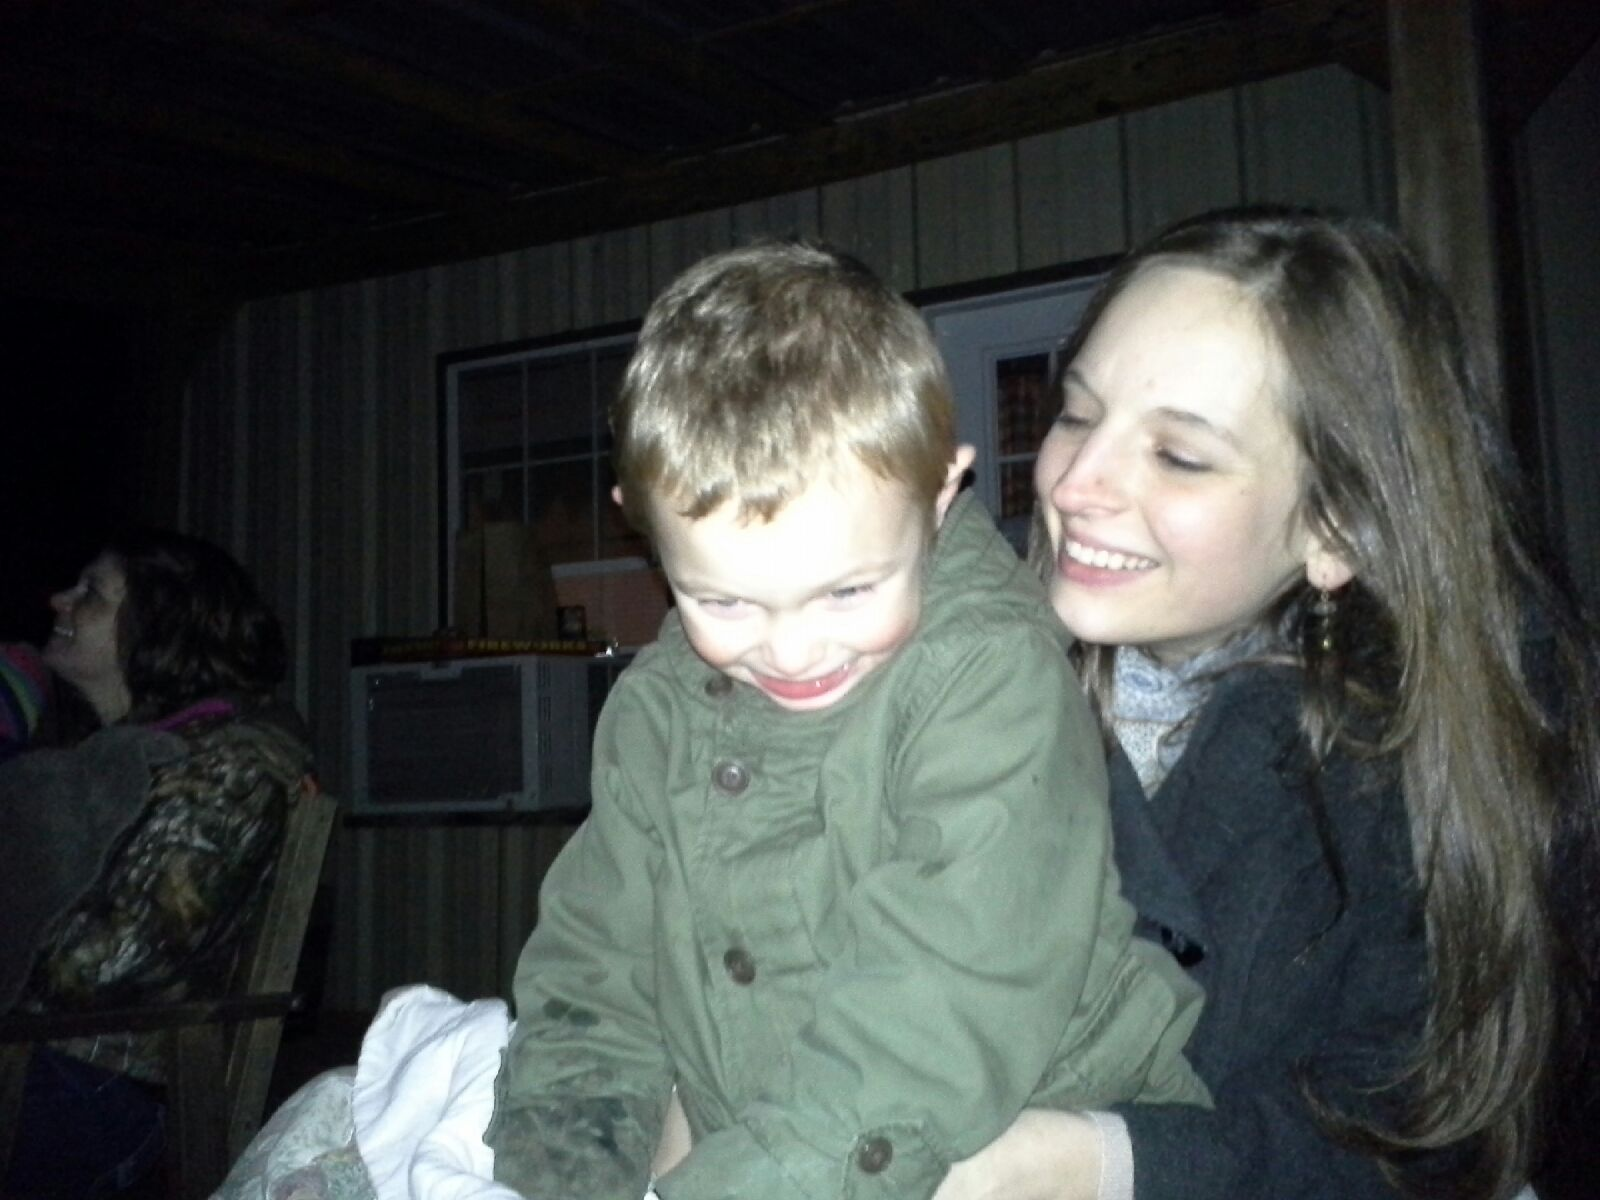 Enjoying New Year's fireworks with my Ezra man!